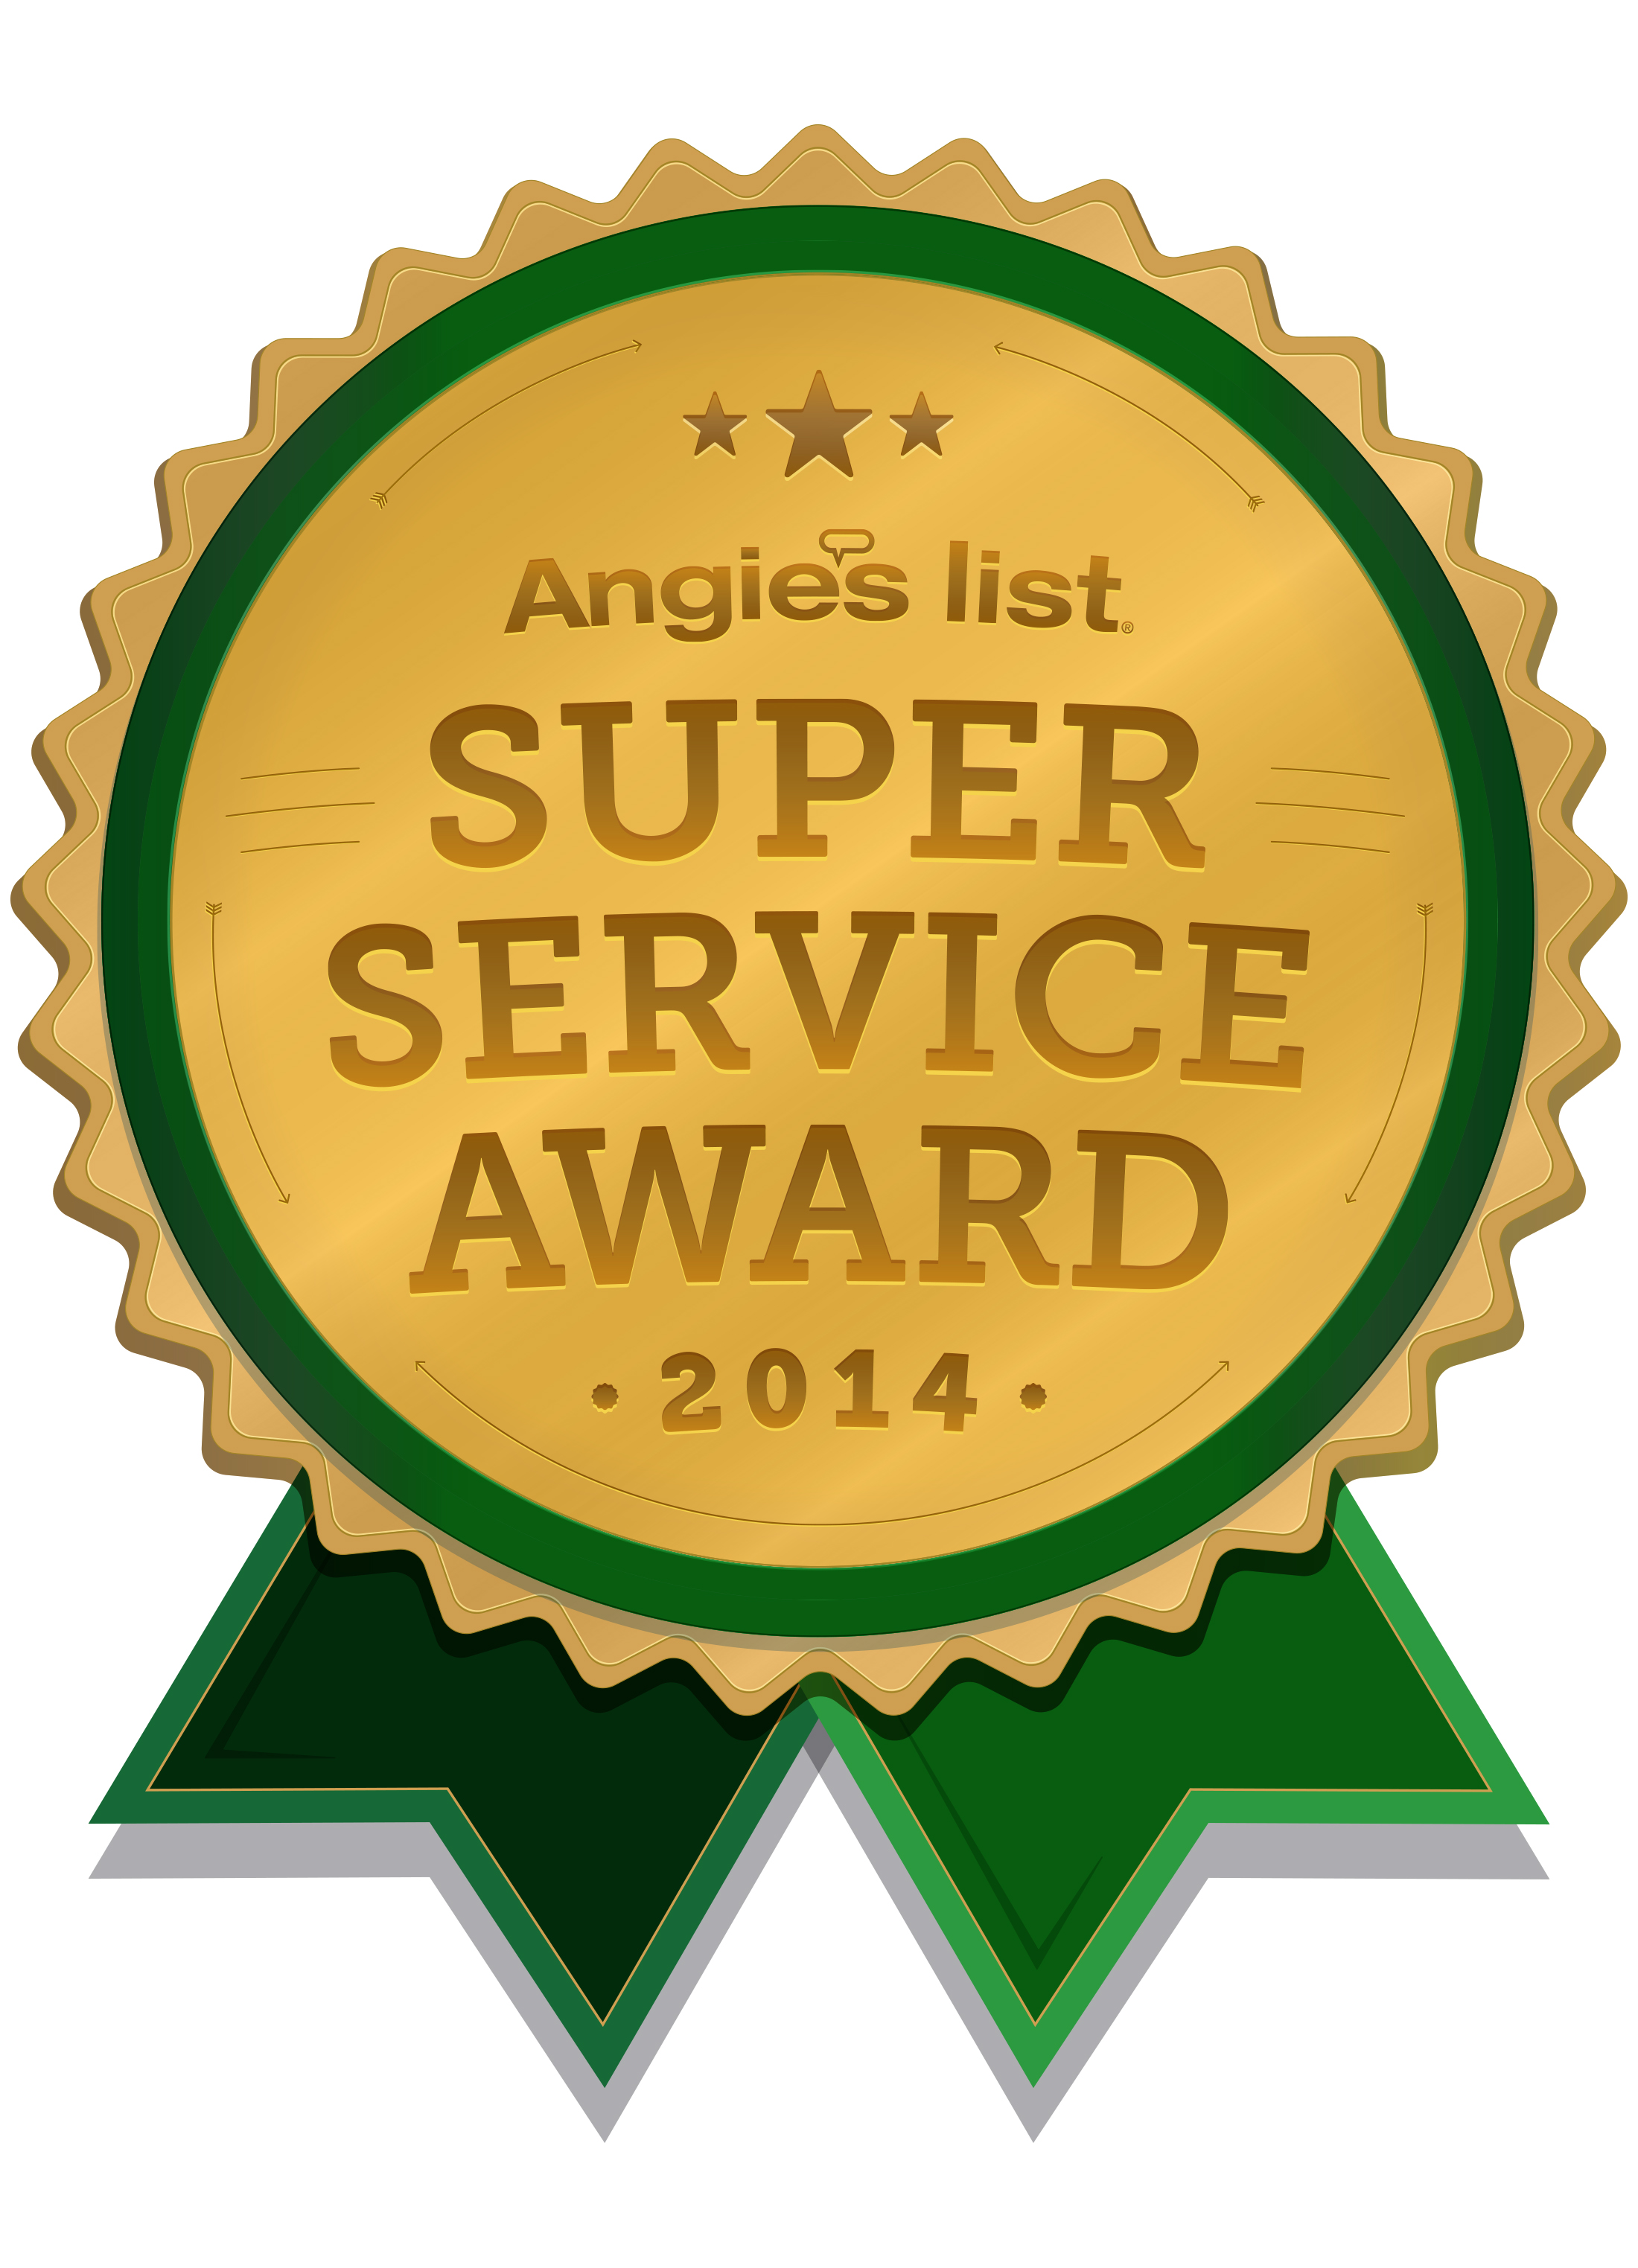 Angies_List_2014_Super_Service_Award